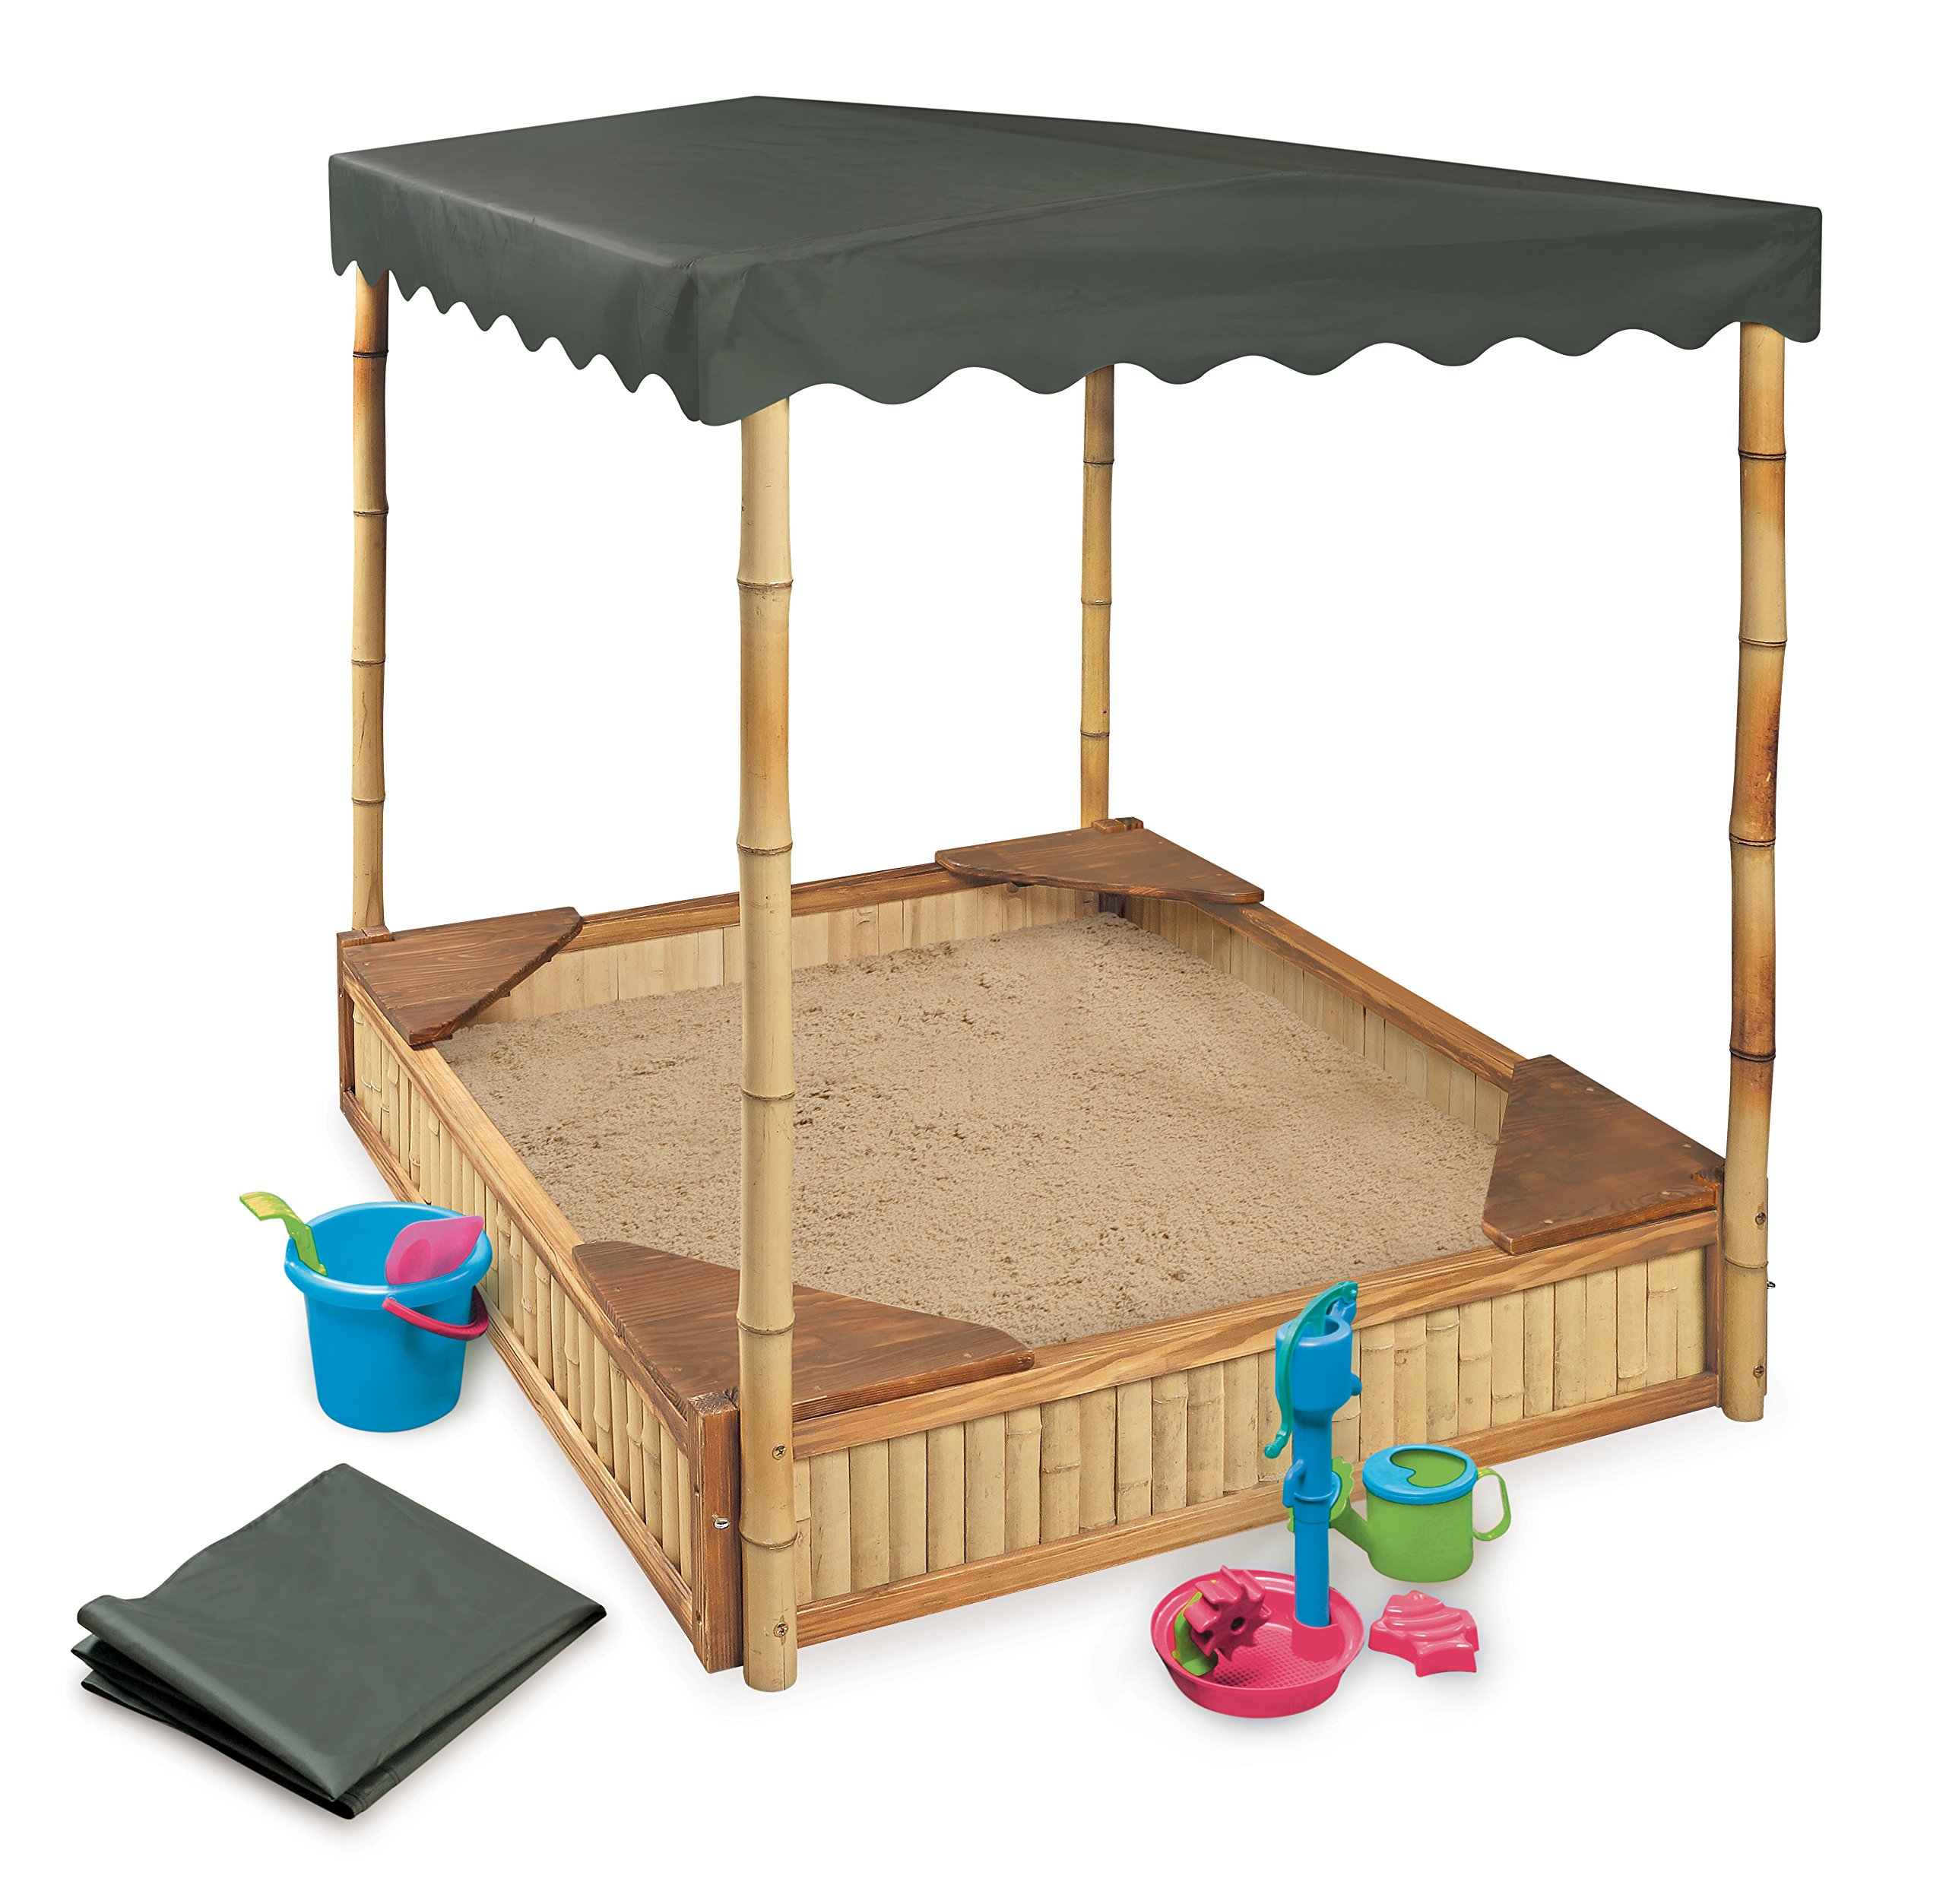 Badger Basket Tropical Fun Square Bamboo/Wood Outdoor Sandbox with Fabric Canopy/Cover and Seats, Natural/Green by Badger Basket (Image #5)